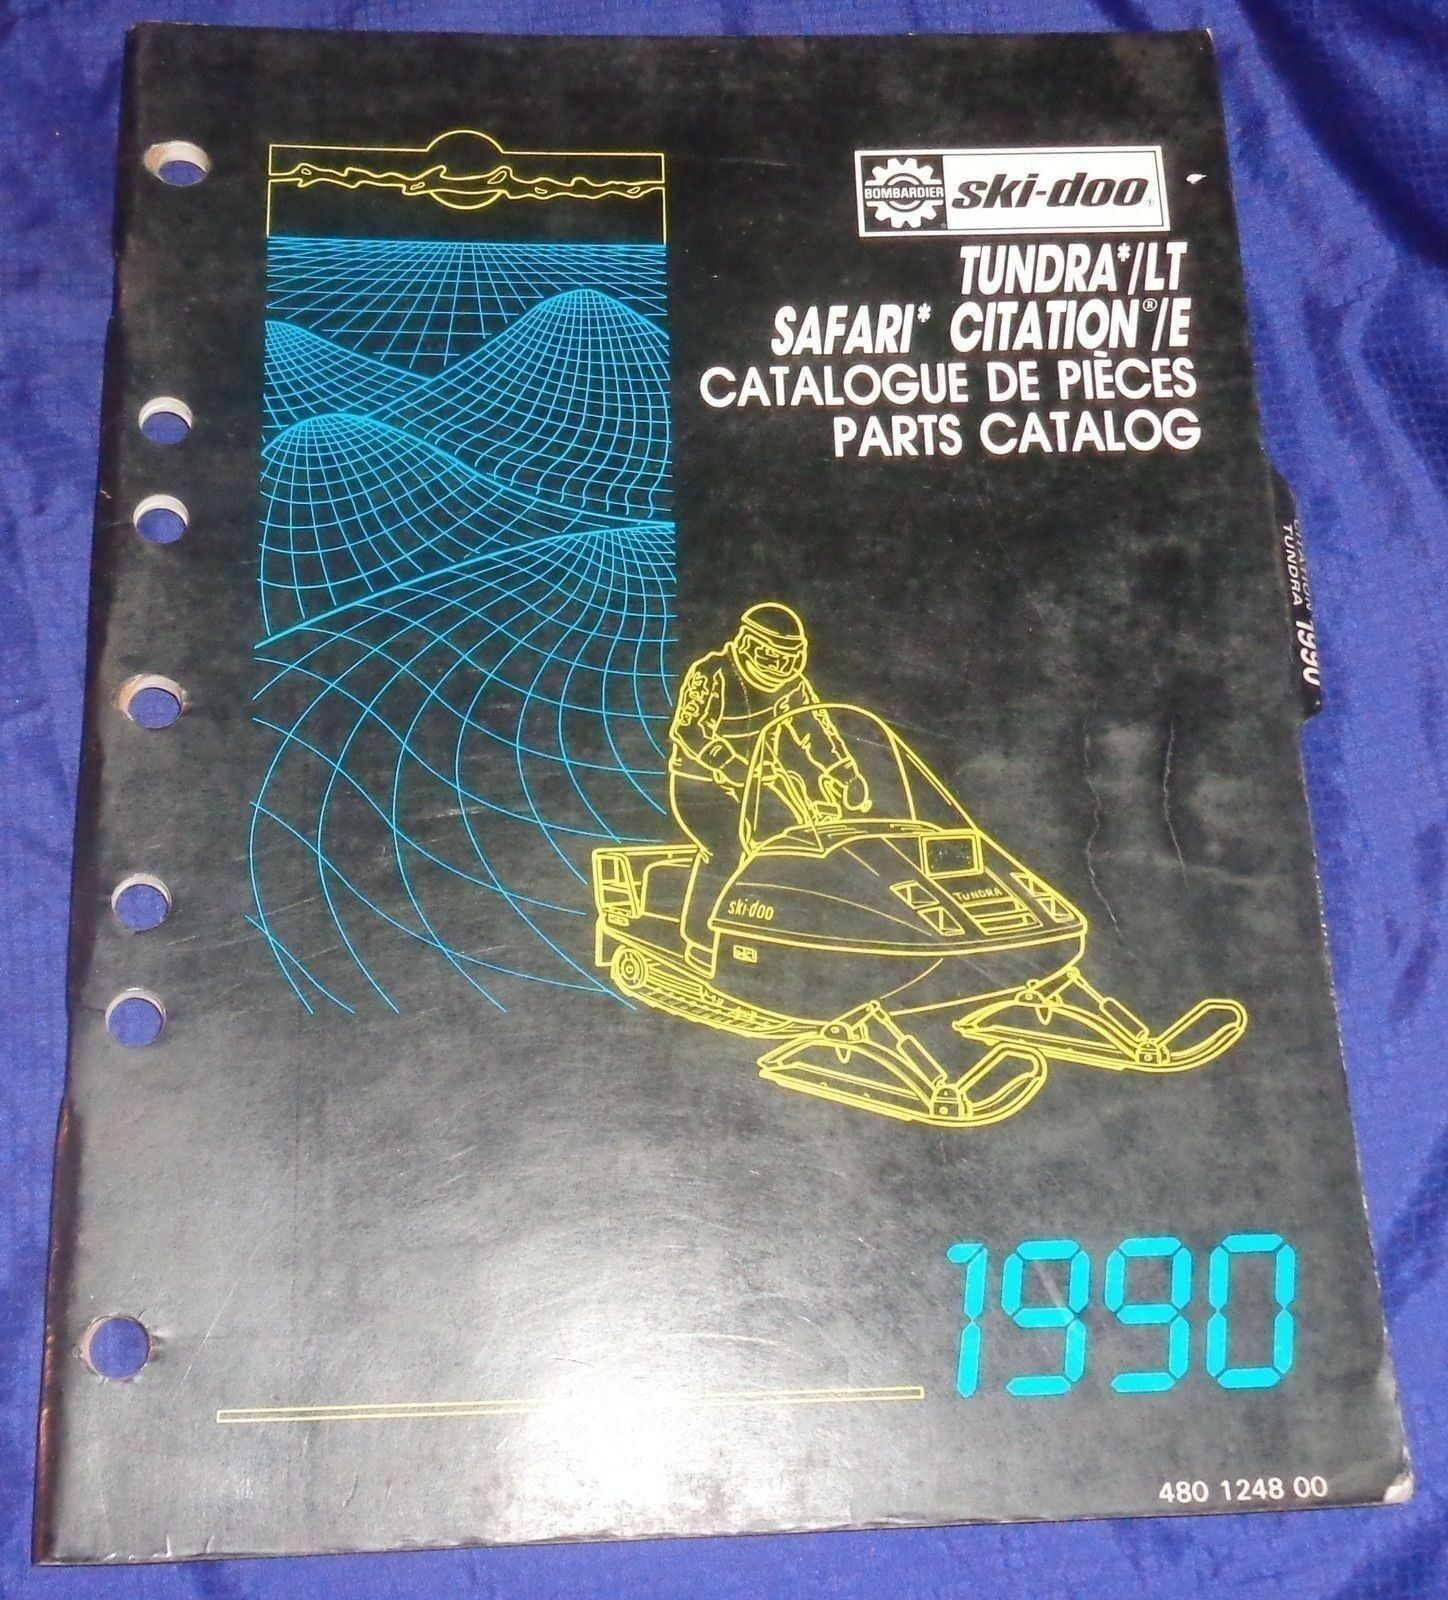 BS689 1990 Ski-Doo Tundra LT Safari Citation E Parts Catalog 480 1248 00 Manual